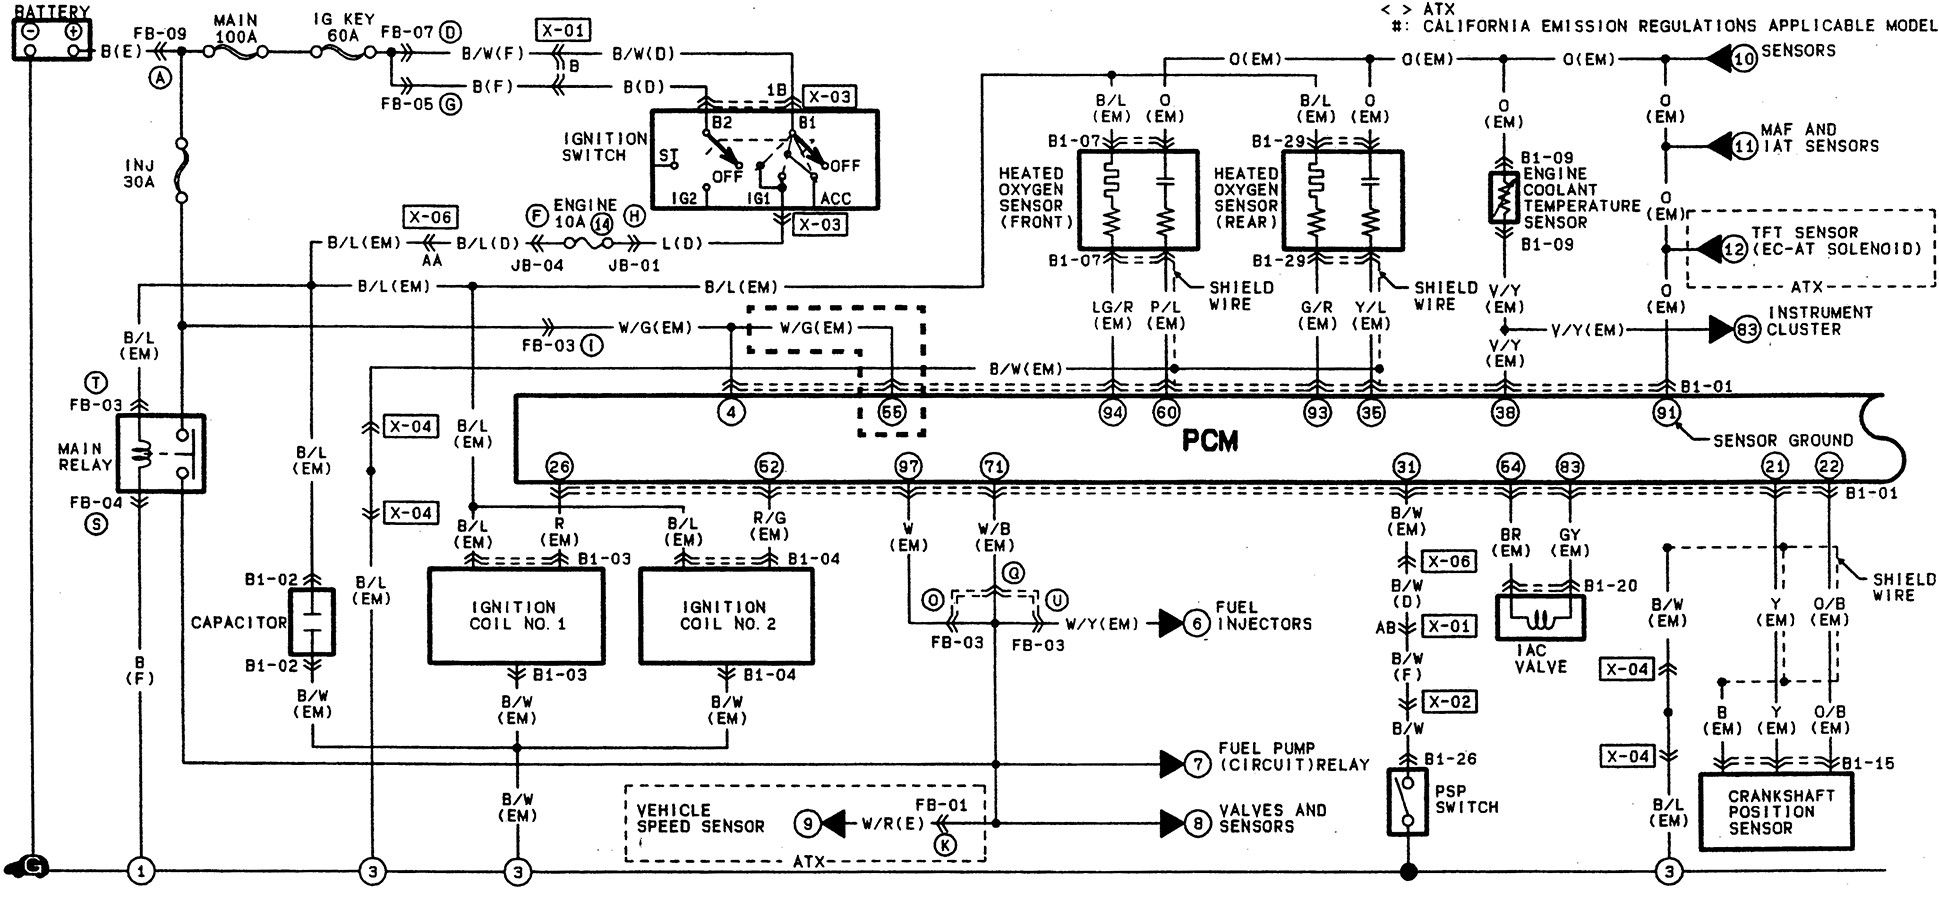 medium resolution of wiring diagram for mazda 323 wiring diagram mazda 323 1993 wiring diagram beautiful documents diagram